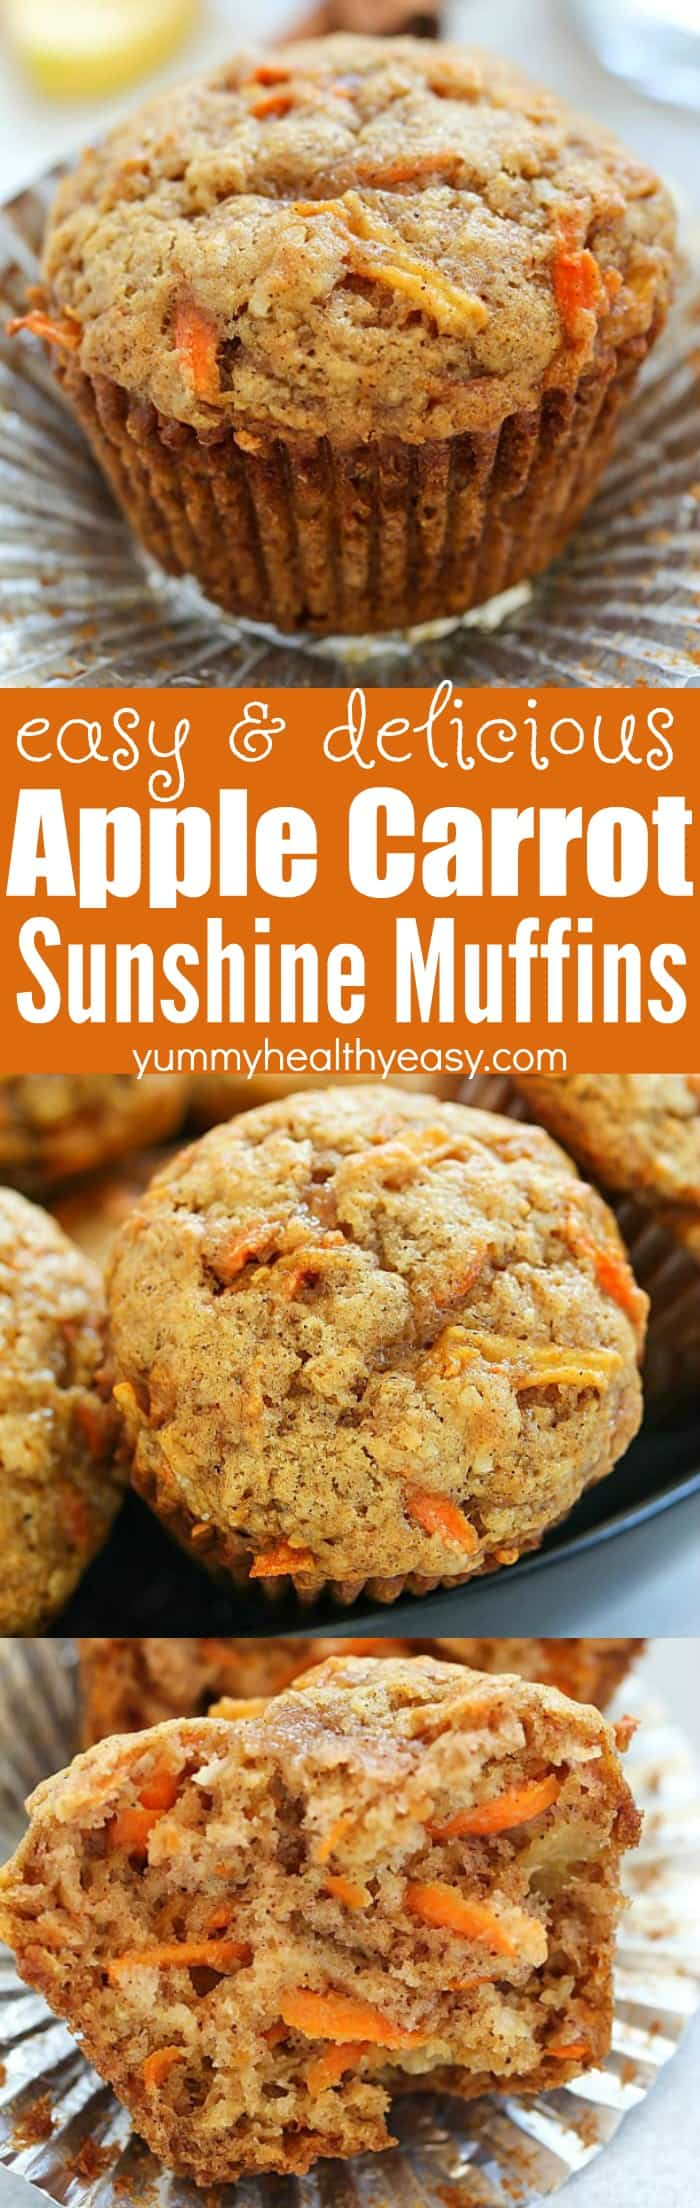 Apple Carrot Muffins aka Sunshine Muffins - Yummy Healthy Easy